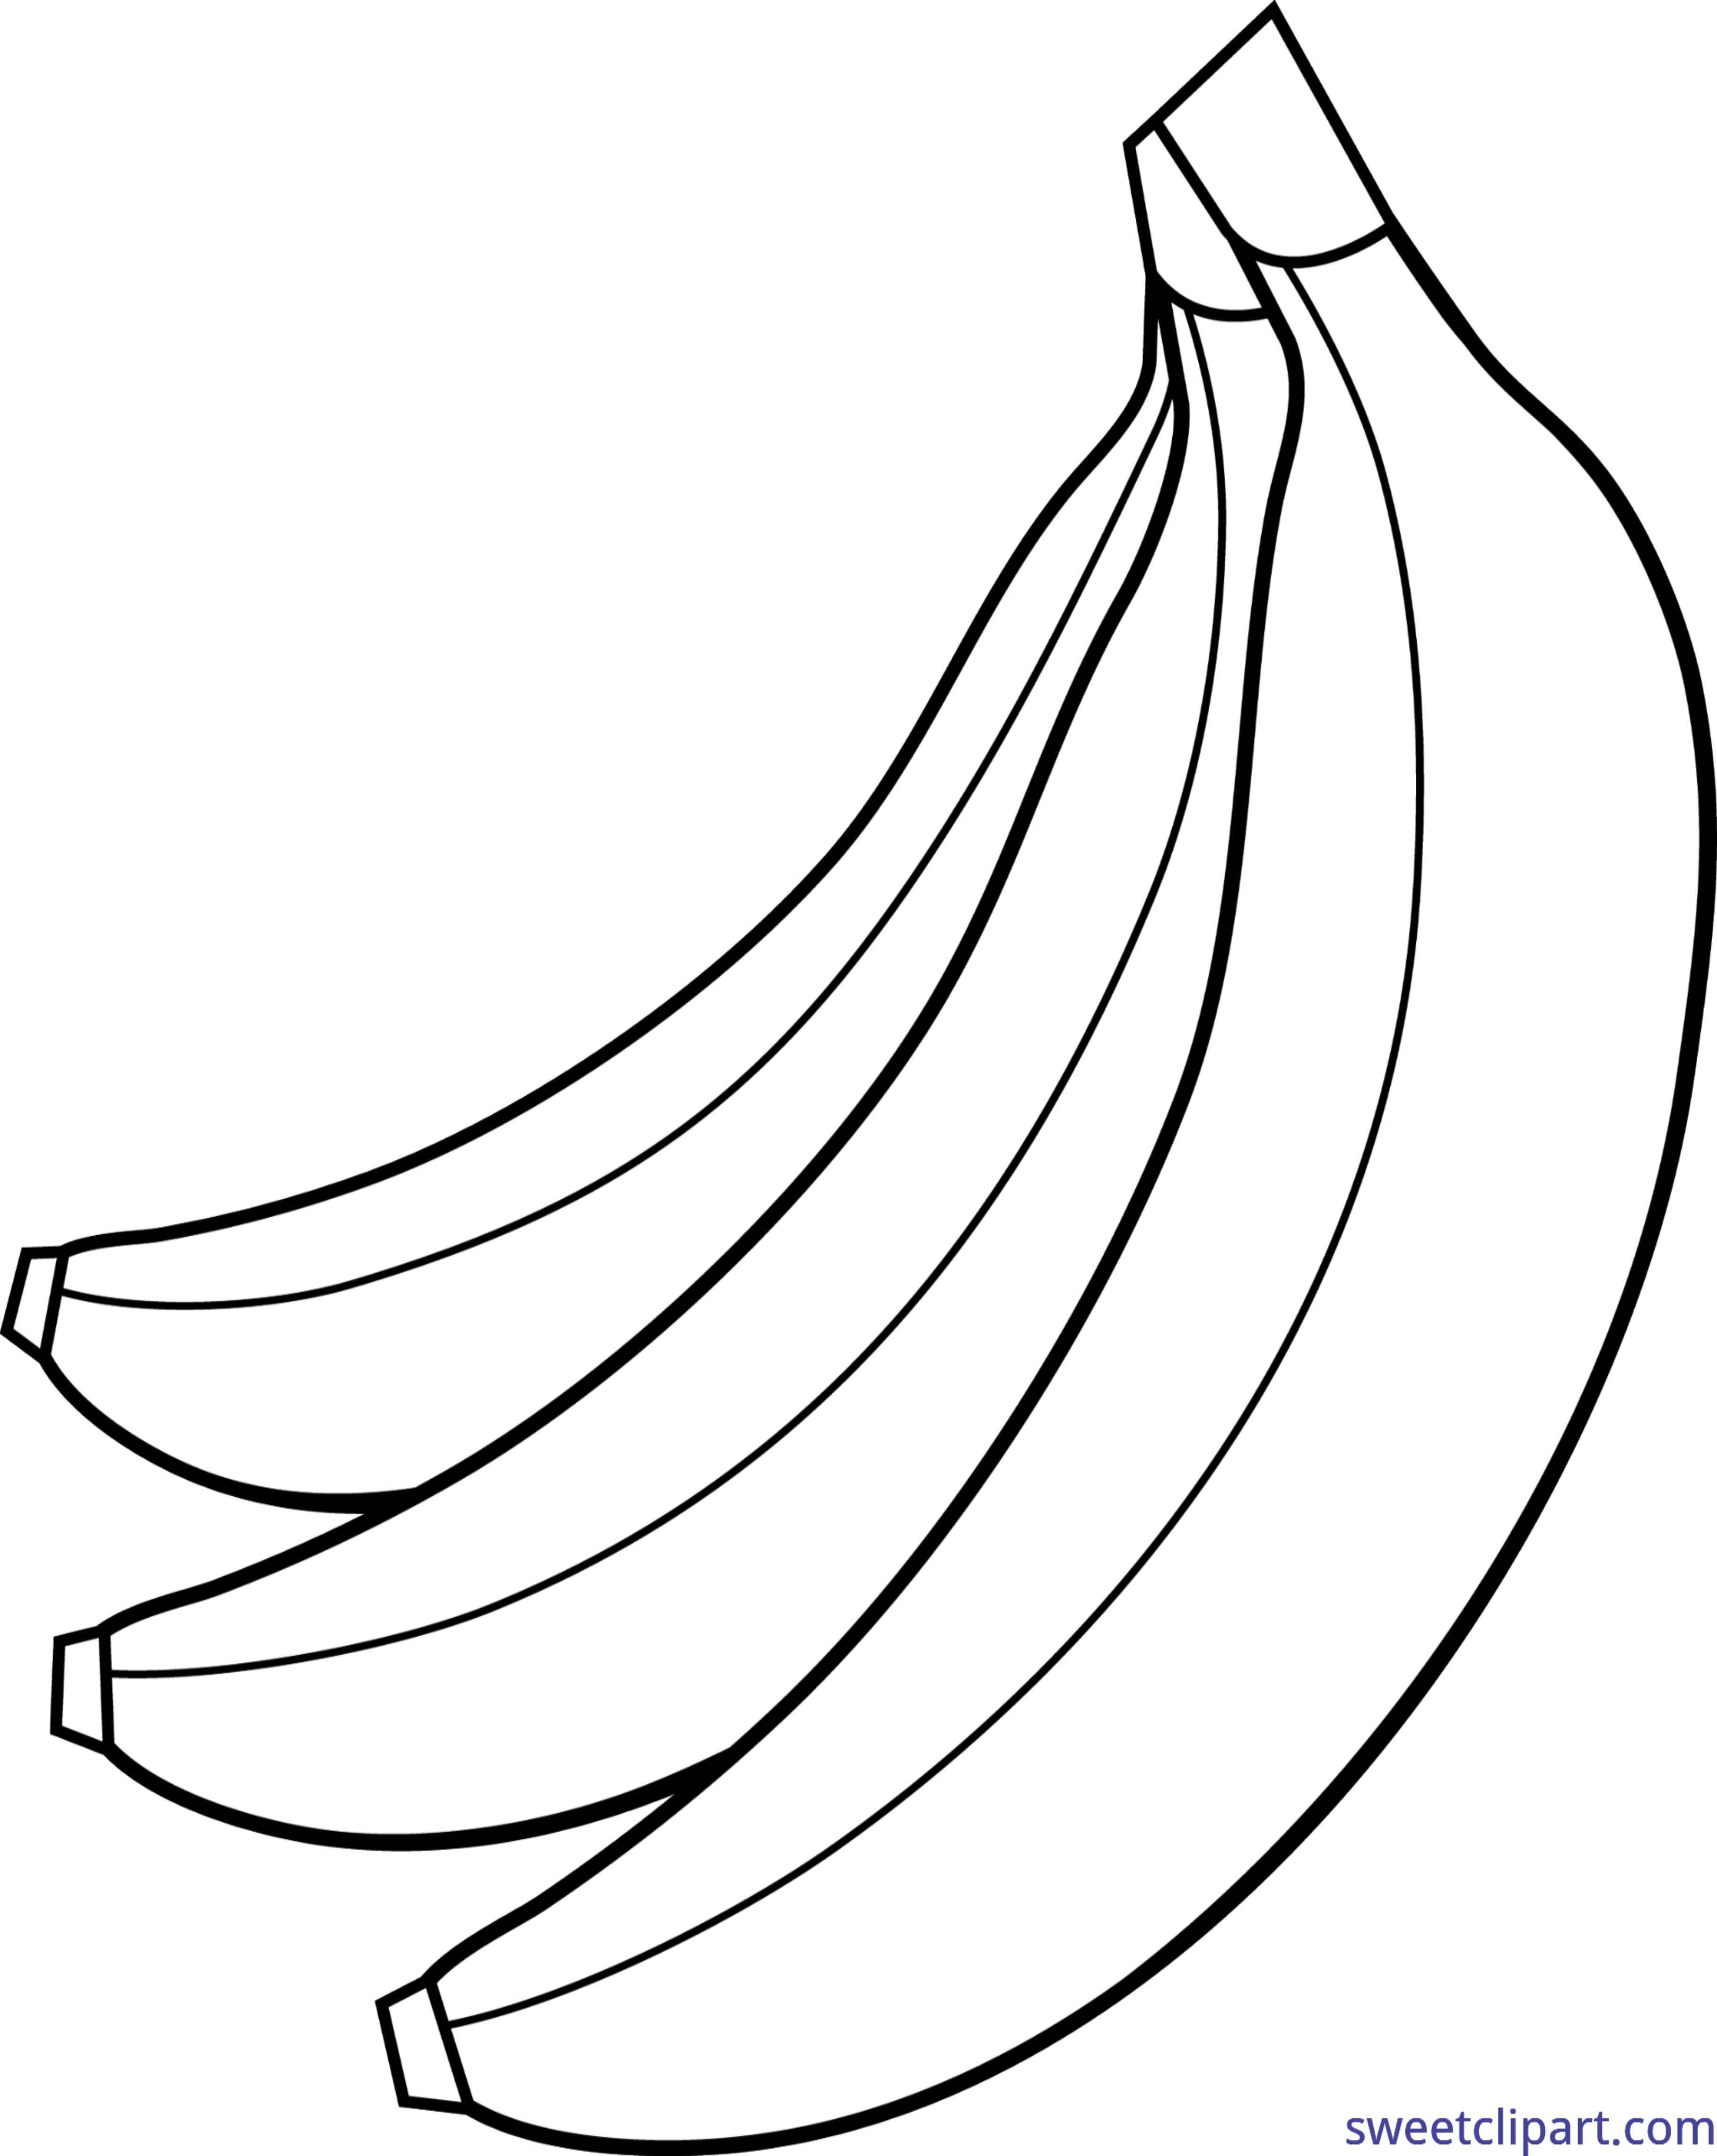 Drawing vegetables bunch. Bananas lineart clip art